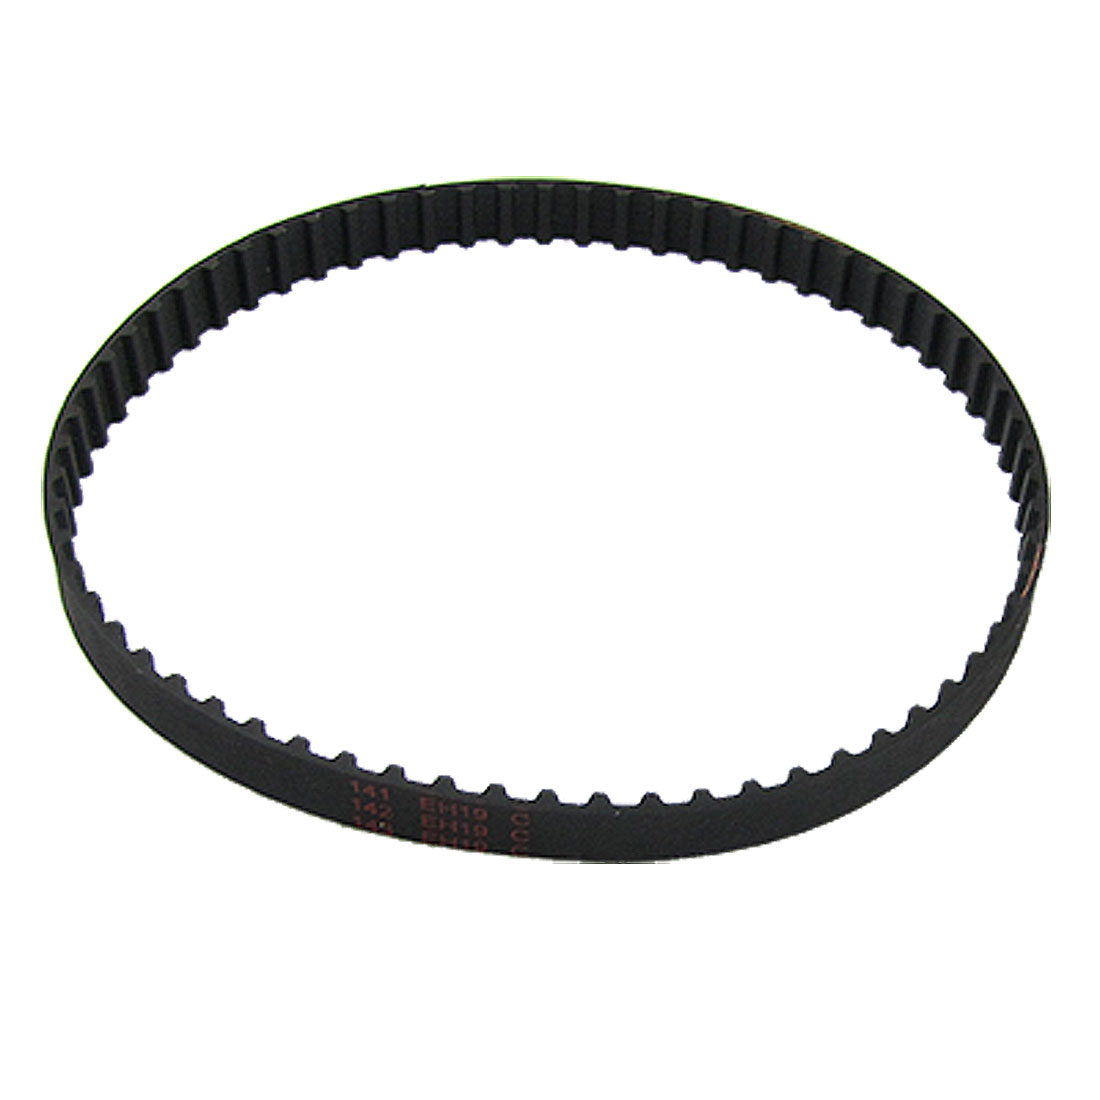 130XL 5.08mm Pitch 10mm Width 65 Teeth Black Synchronous Timing Belt